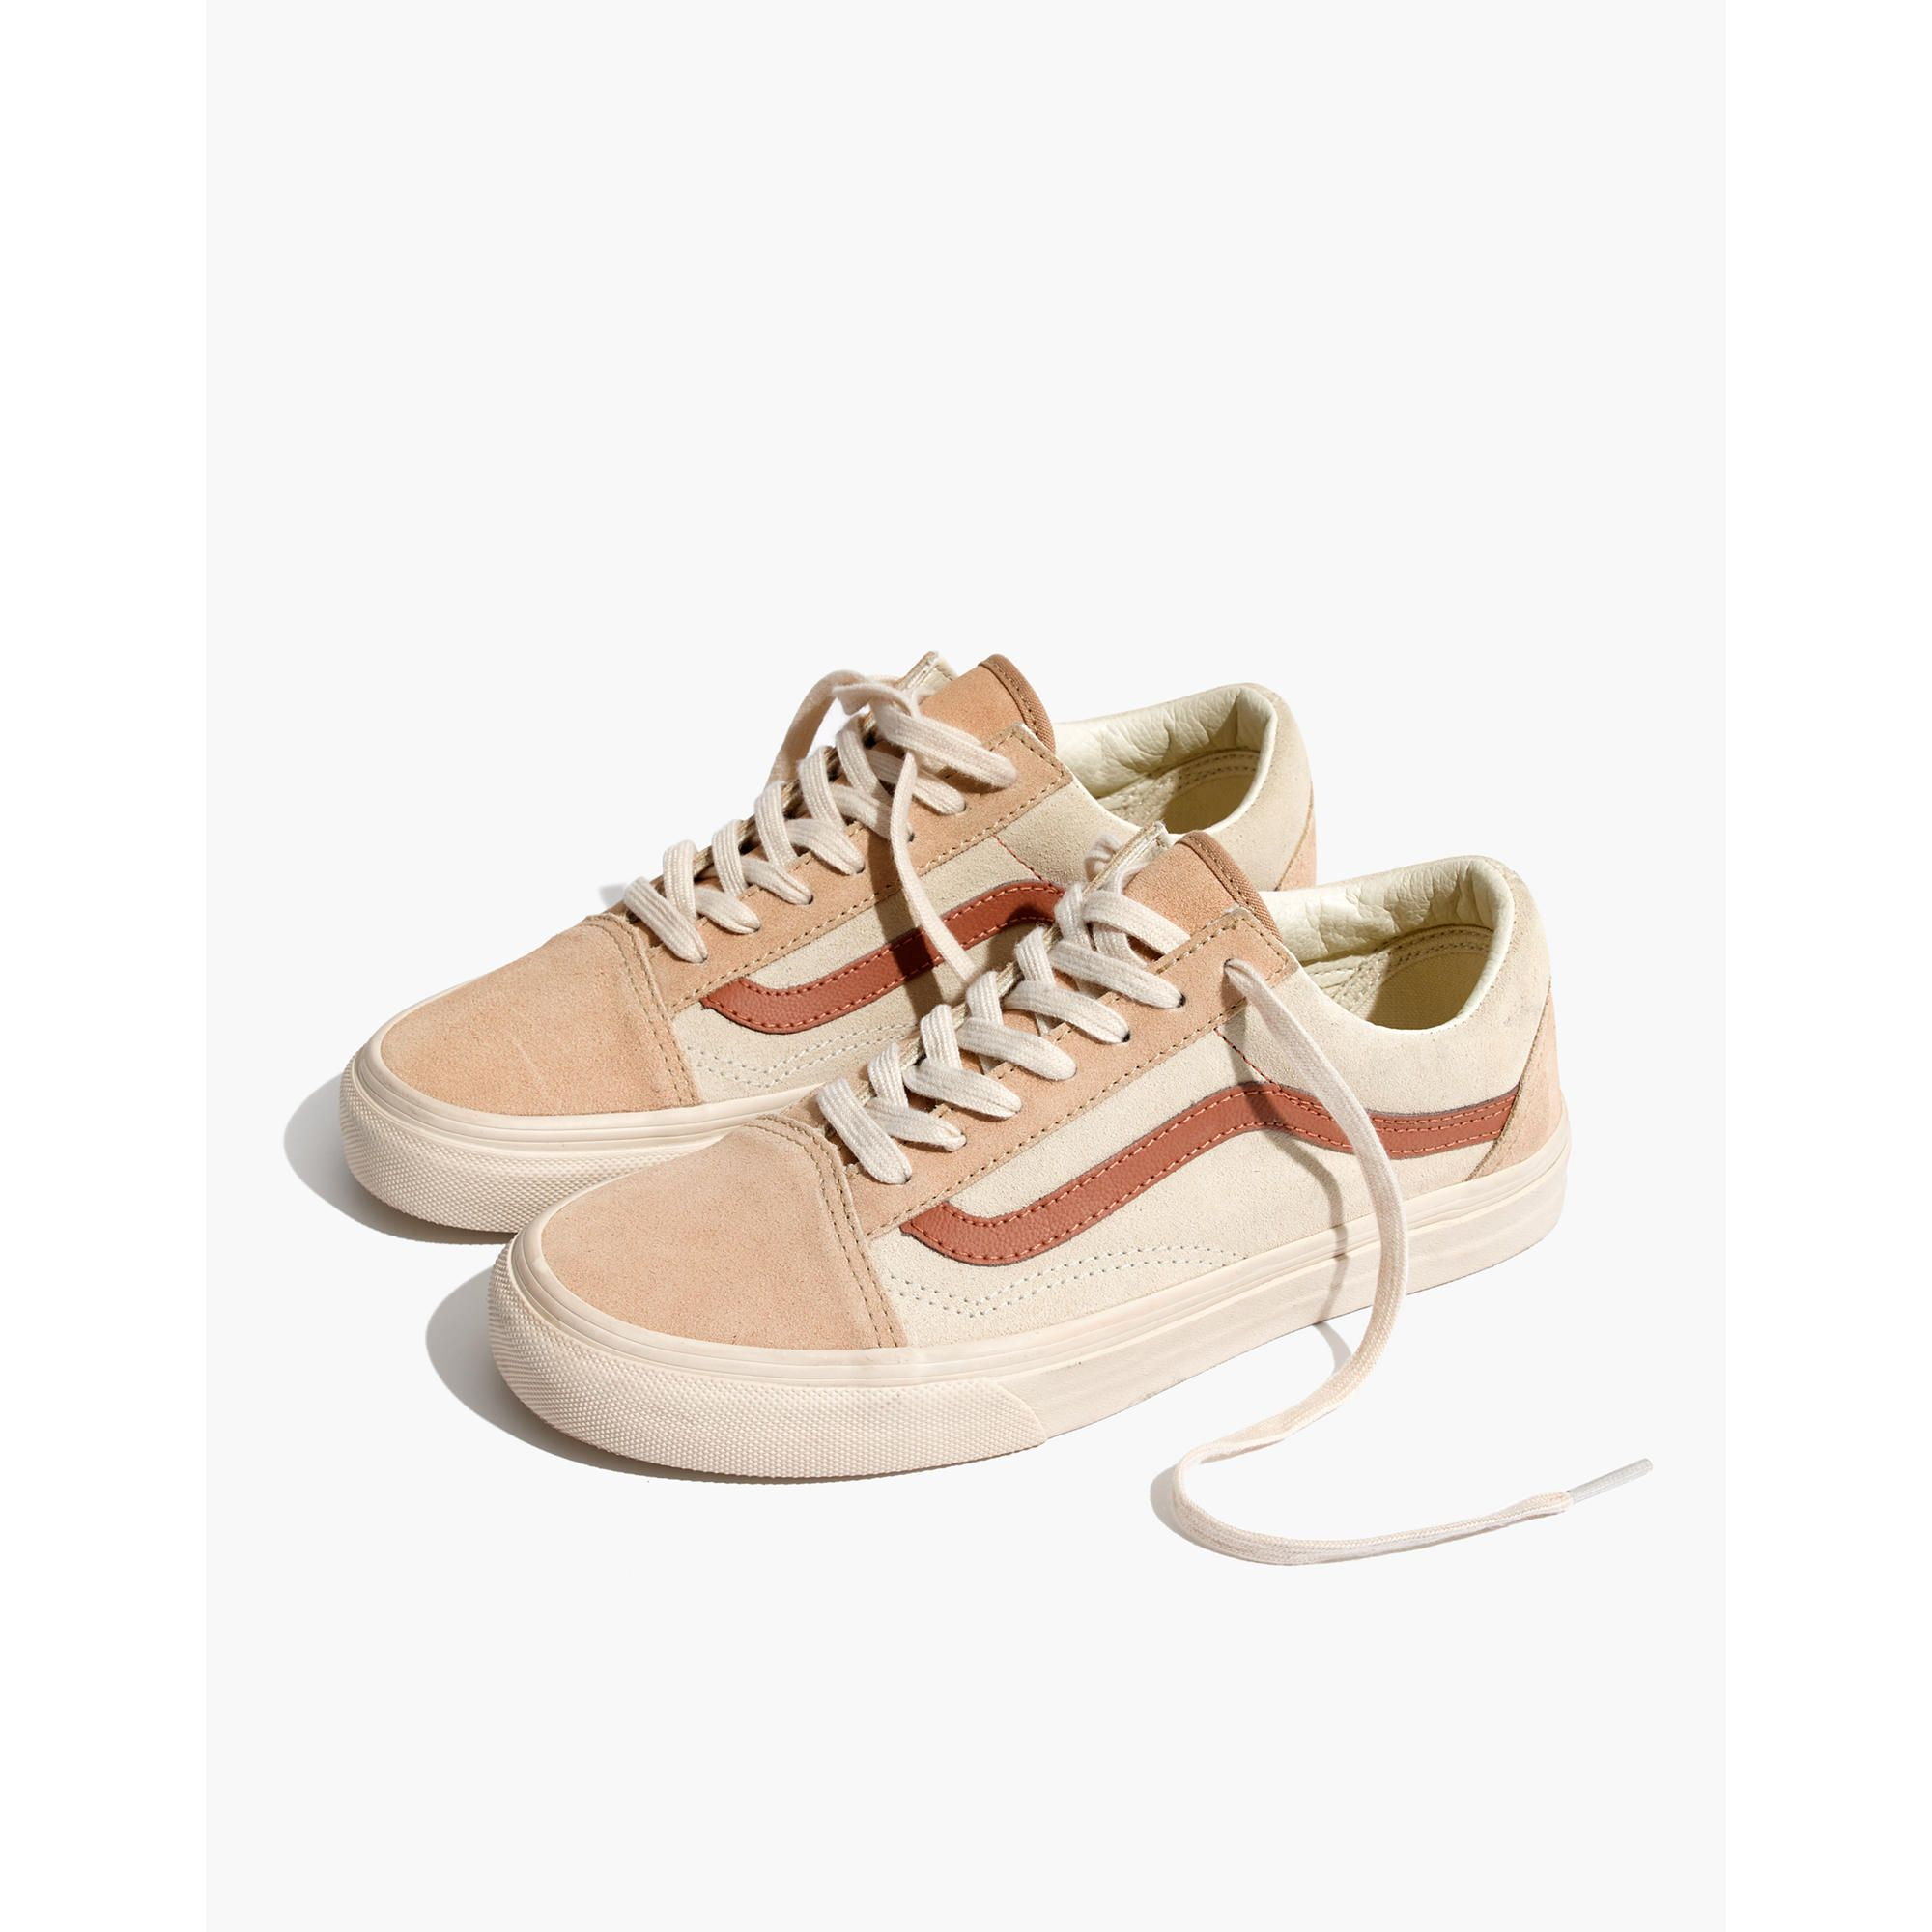 49827ae030 Madewell x Vans® Unisex Old Skool Lace-Up Sneakers in Camel Colorblock